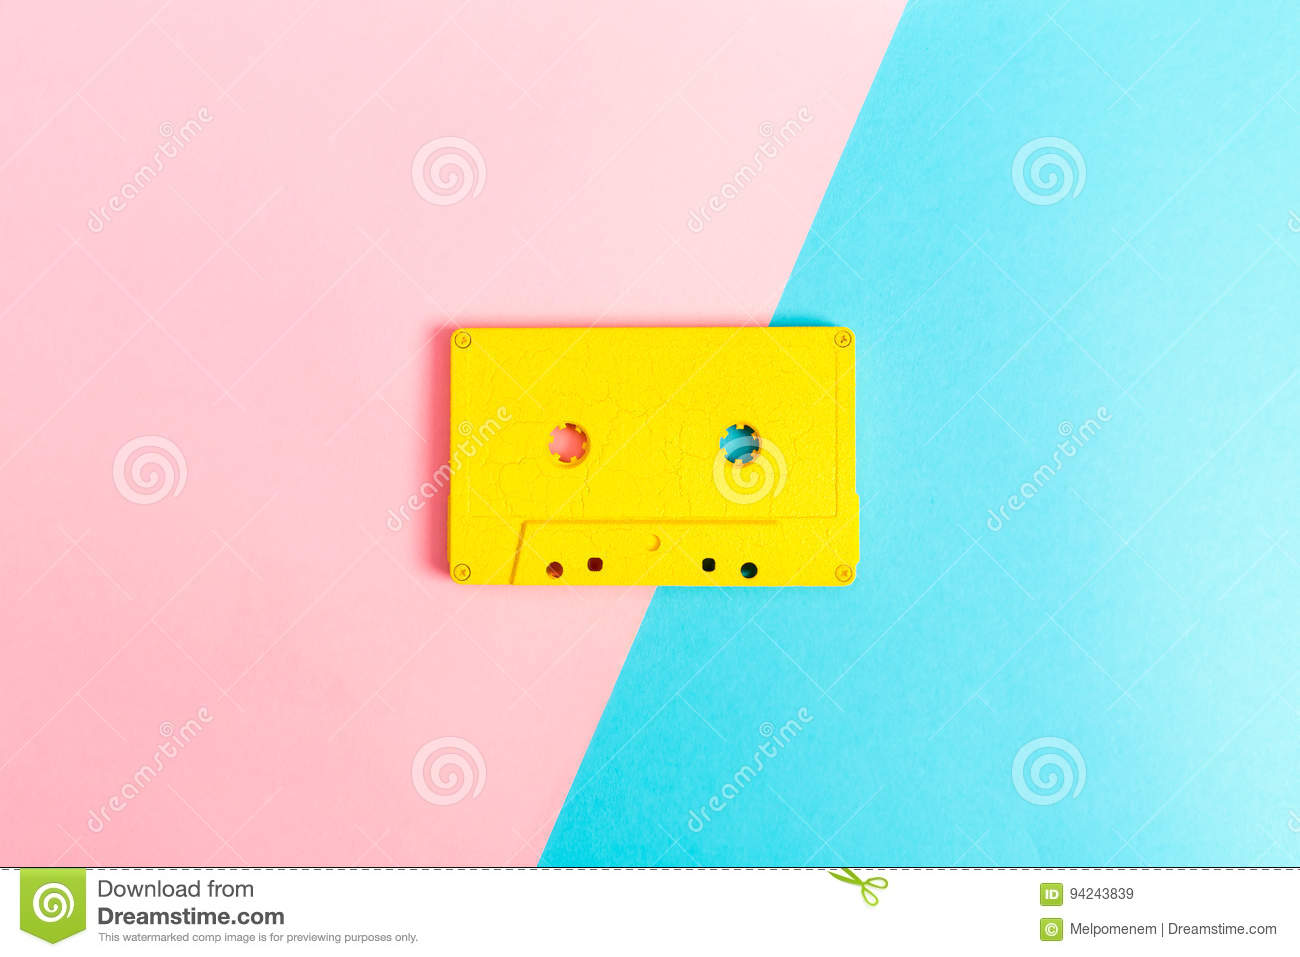 Retro cassette tapes on bright background